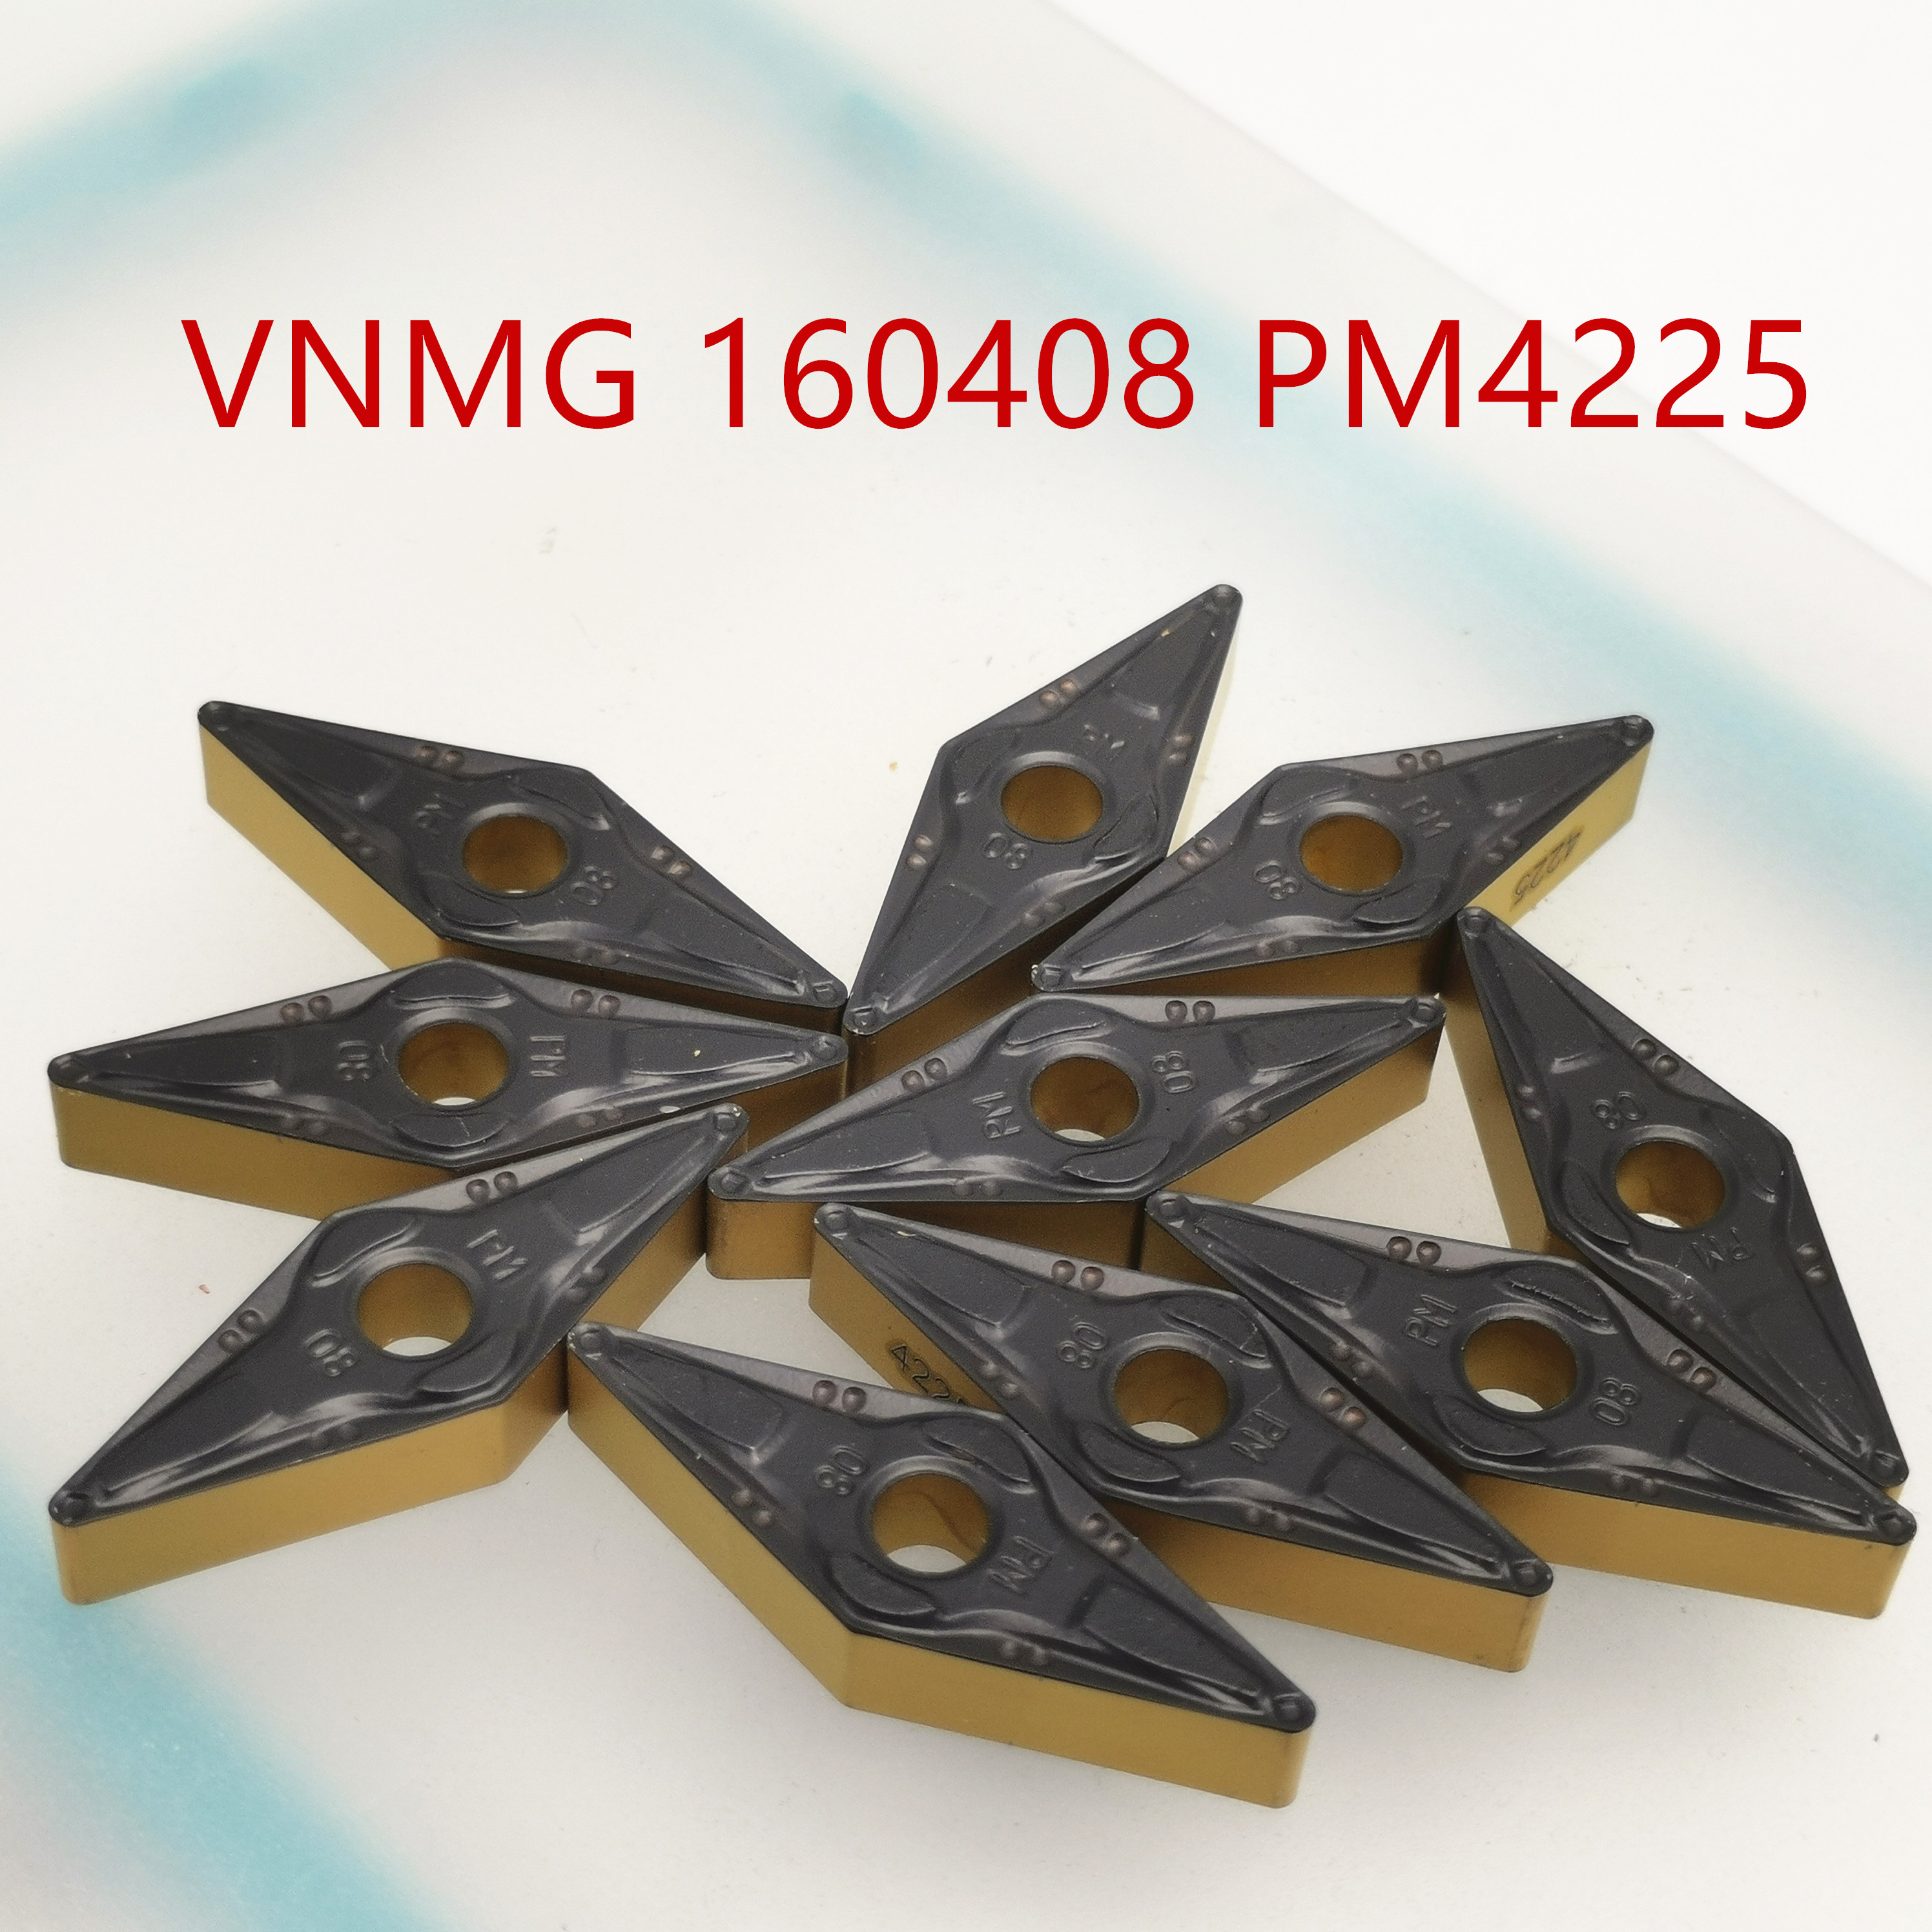 Tungsten Carbide VNMG160408 PM4225/ VNMG160404 PM 4225 External Turning Tool Carbide Insert High Quality VNMG Lathe Cutter Tool